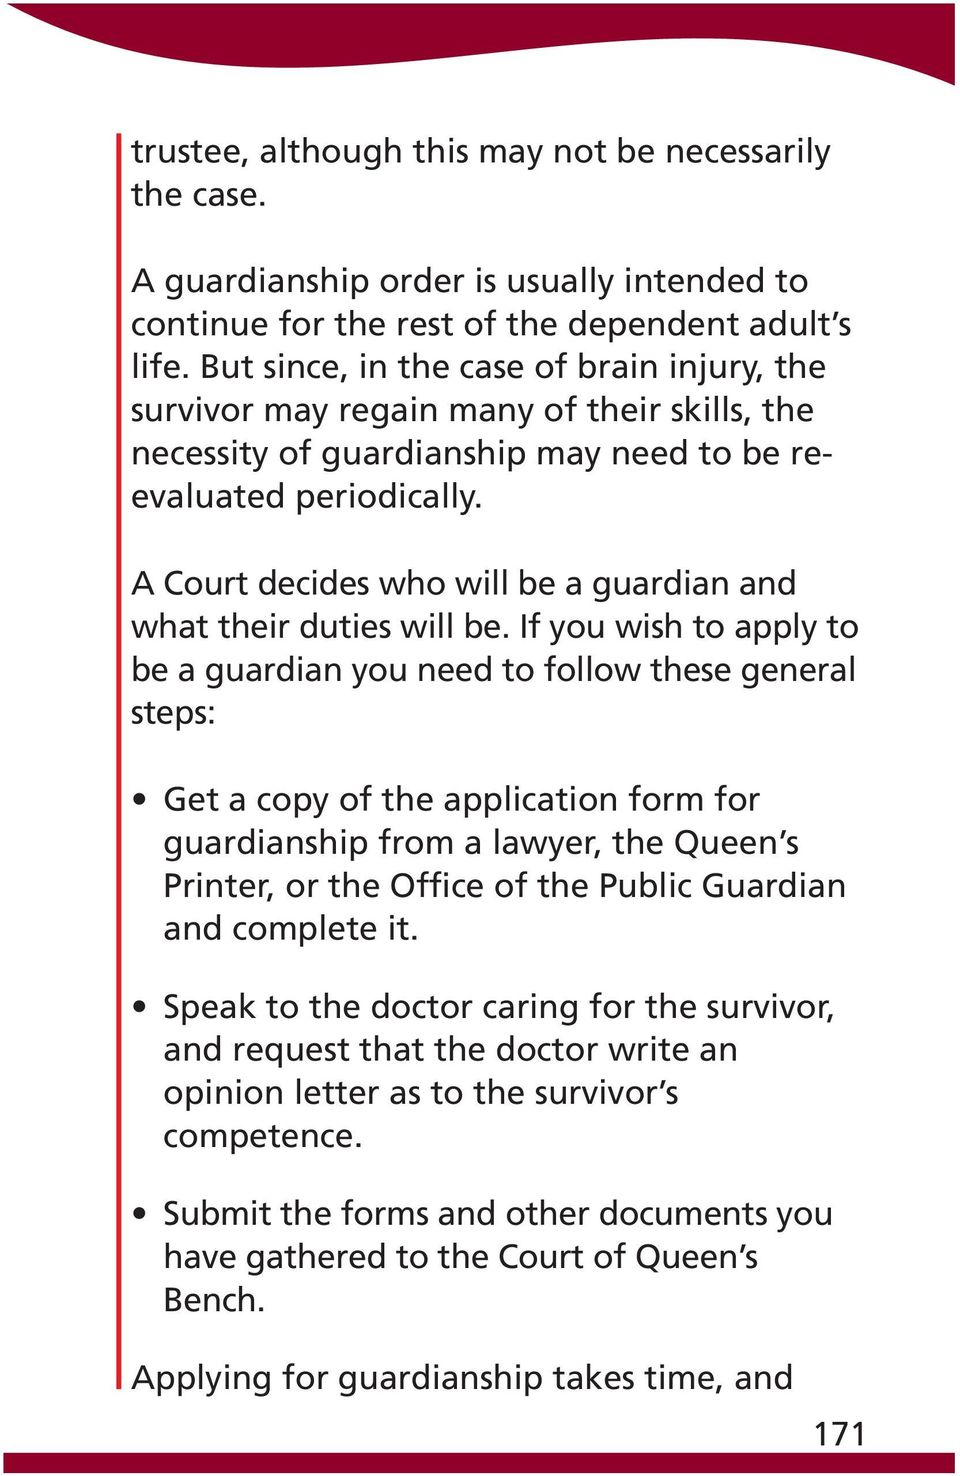 A Court decides who will be a guardian and what their duties will be.